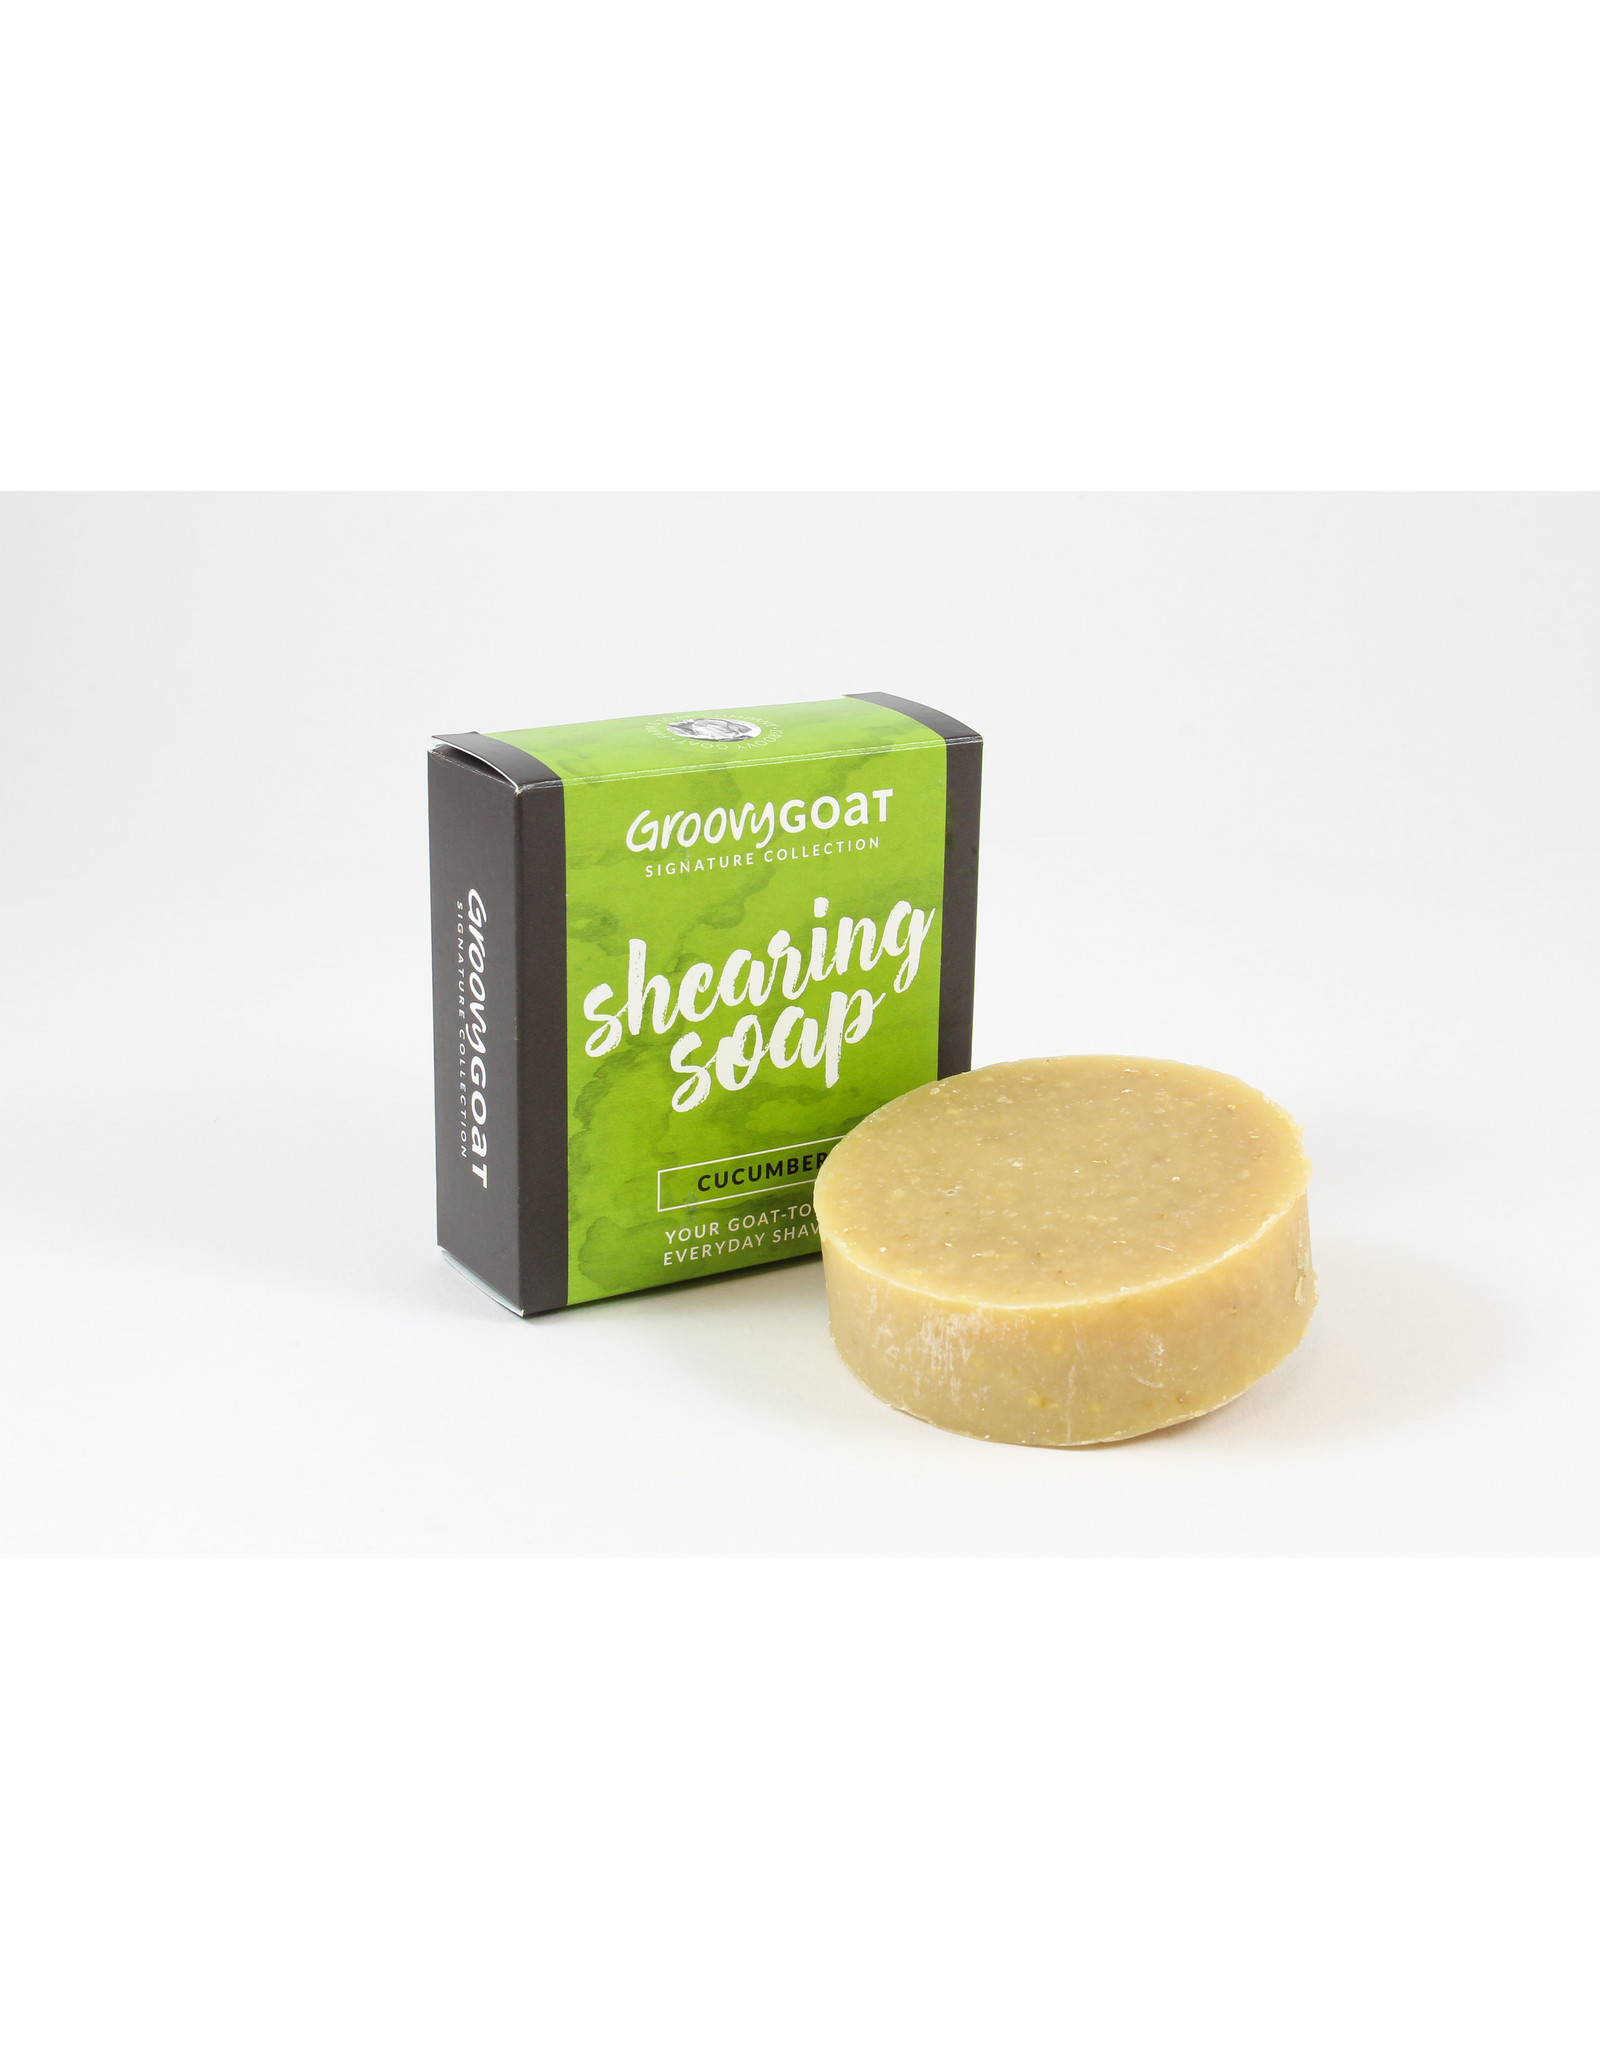 Groovy Goat Shearing Soap Shave Bars by Groovy Goat